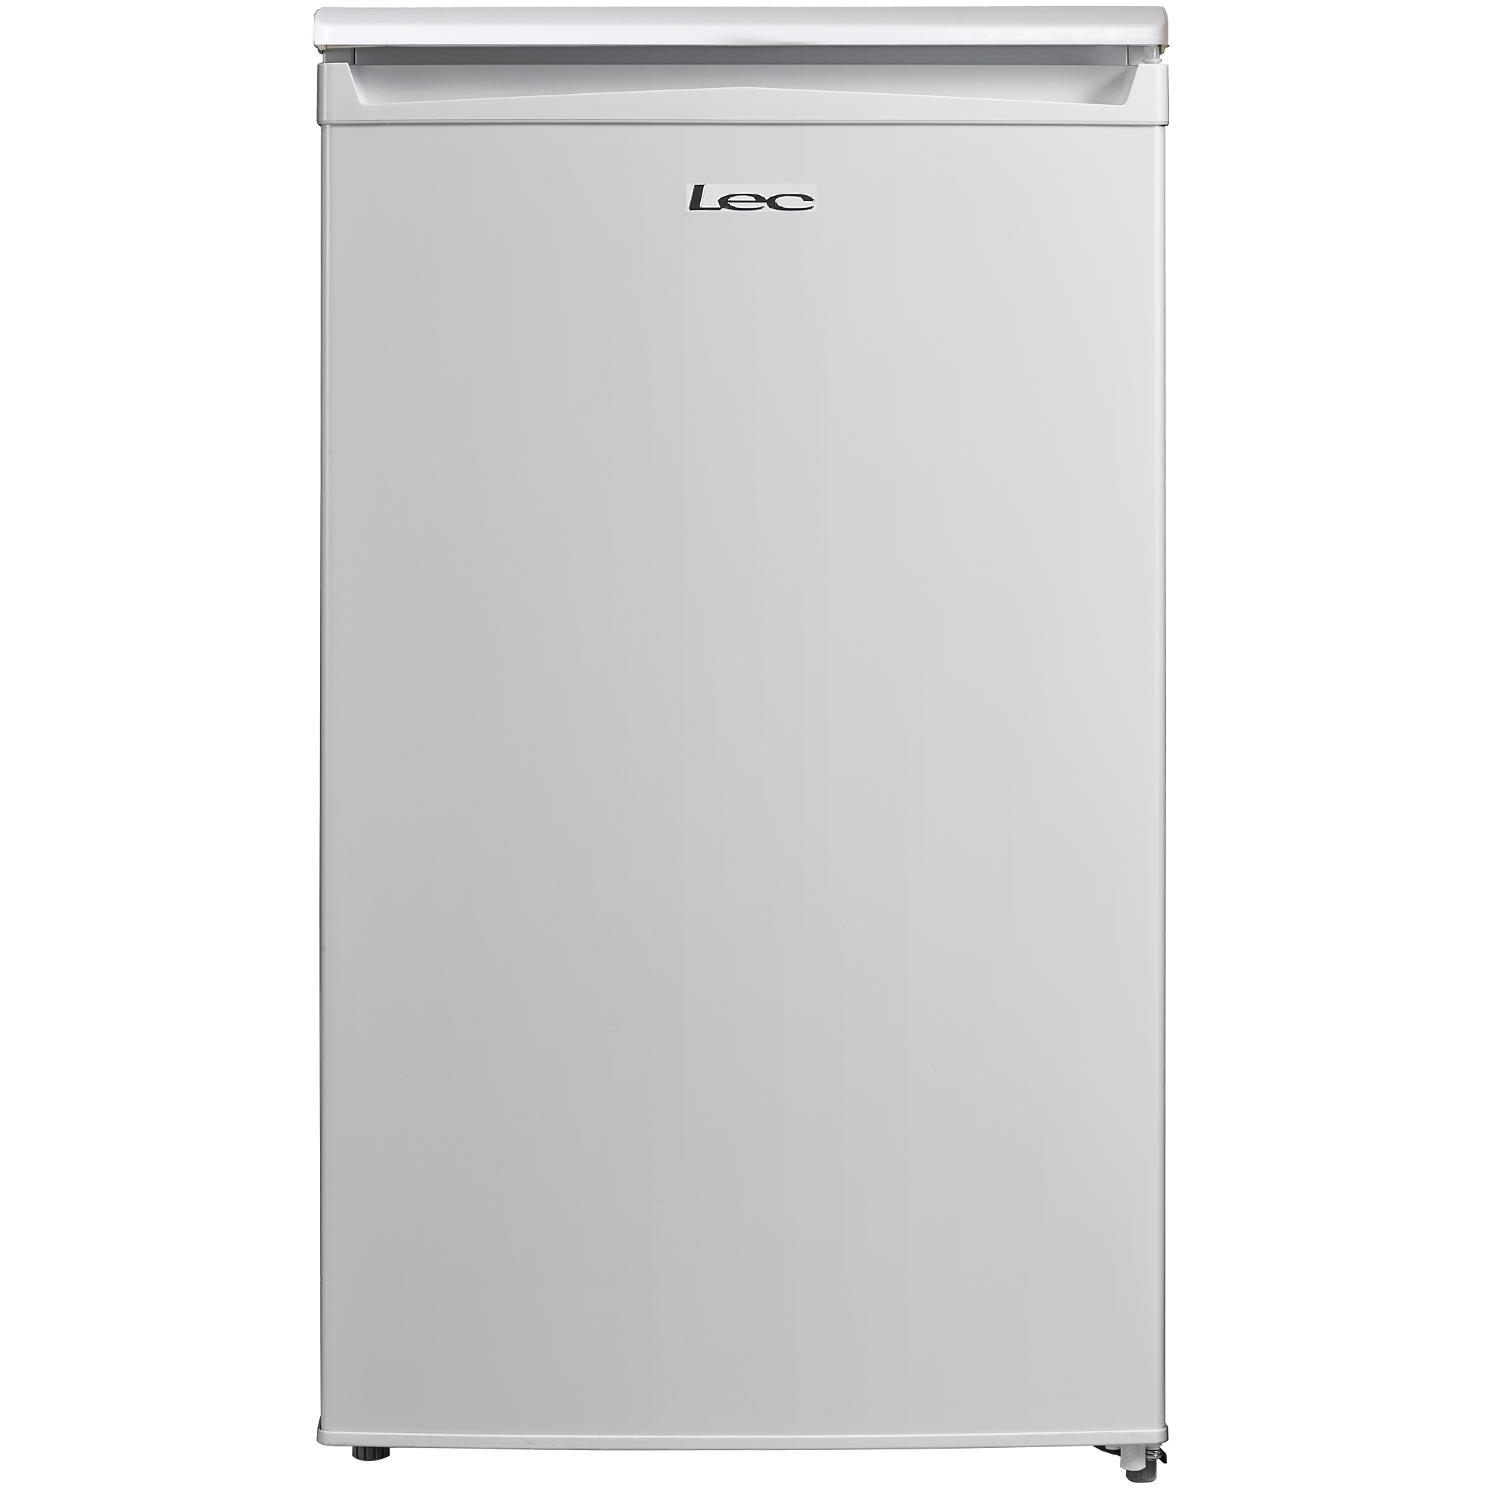 Lec 55cm Undercounter Fridge - White - 0